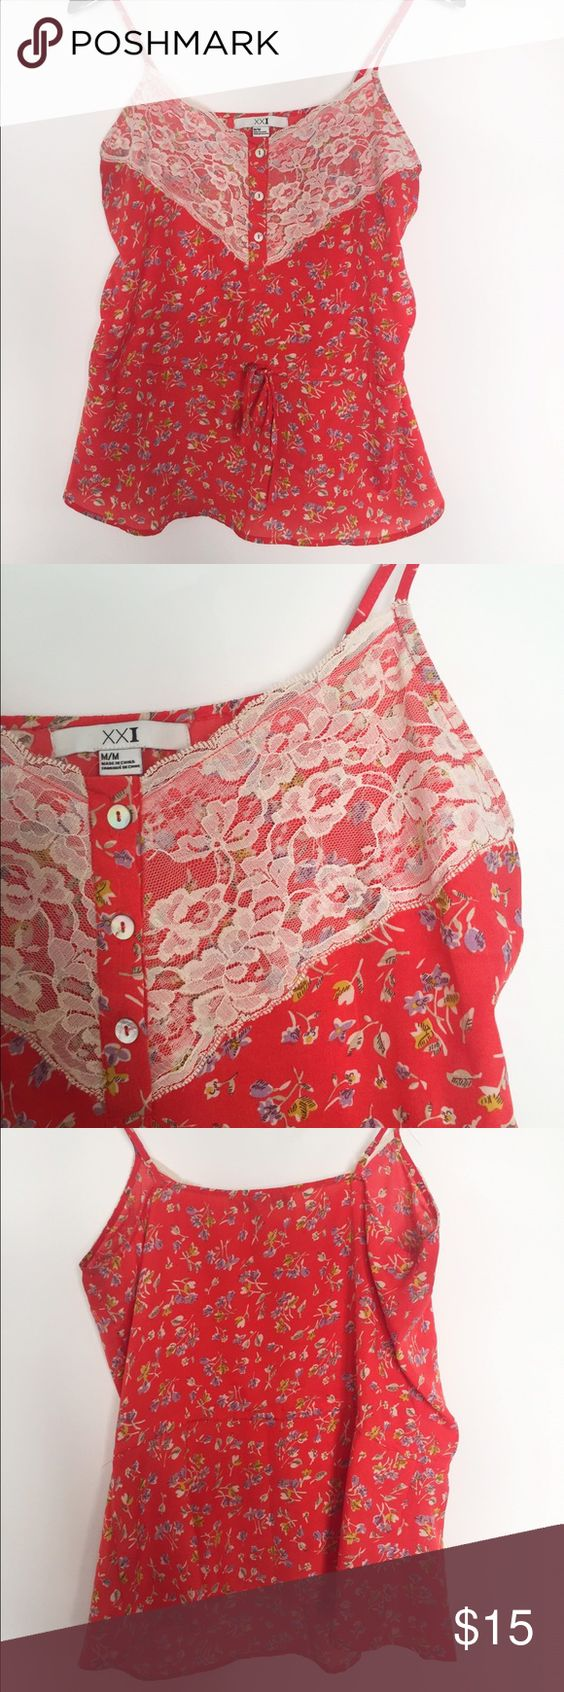 """Forever 21 Floral Lace Tank M In good pre-owned condition. Slight discolor under armpits see picture 4. Cute formal top with lace detail near the neckline. Adjustable straps and draw string around waist. Measurements are 25"""" long and 22"""" pit-pit. 100% polyester. Forever 21 Tops Tank Tops"""